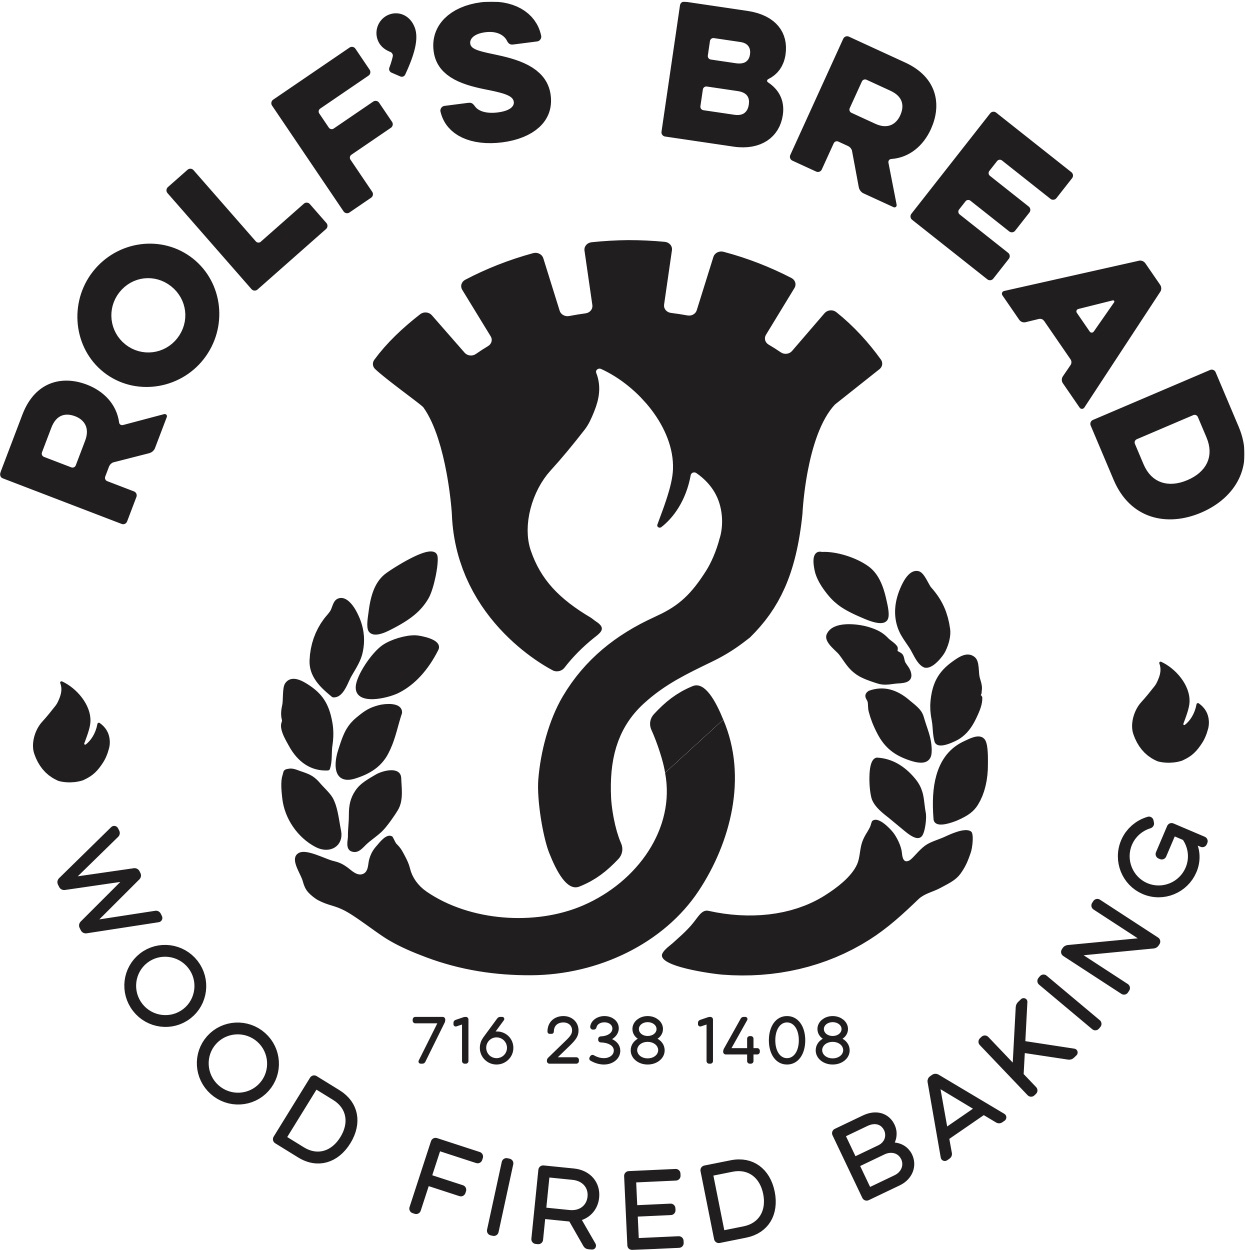 Rolf's Bread